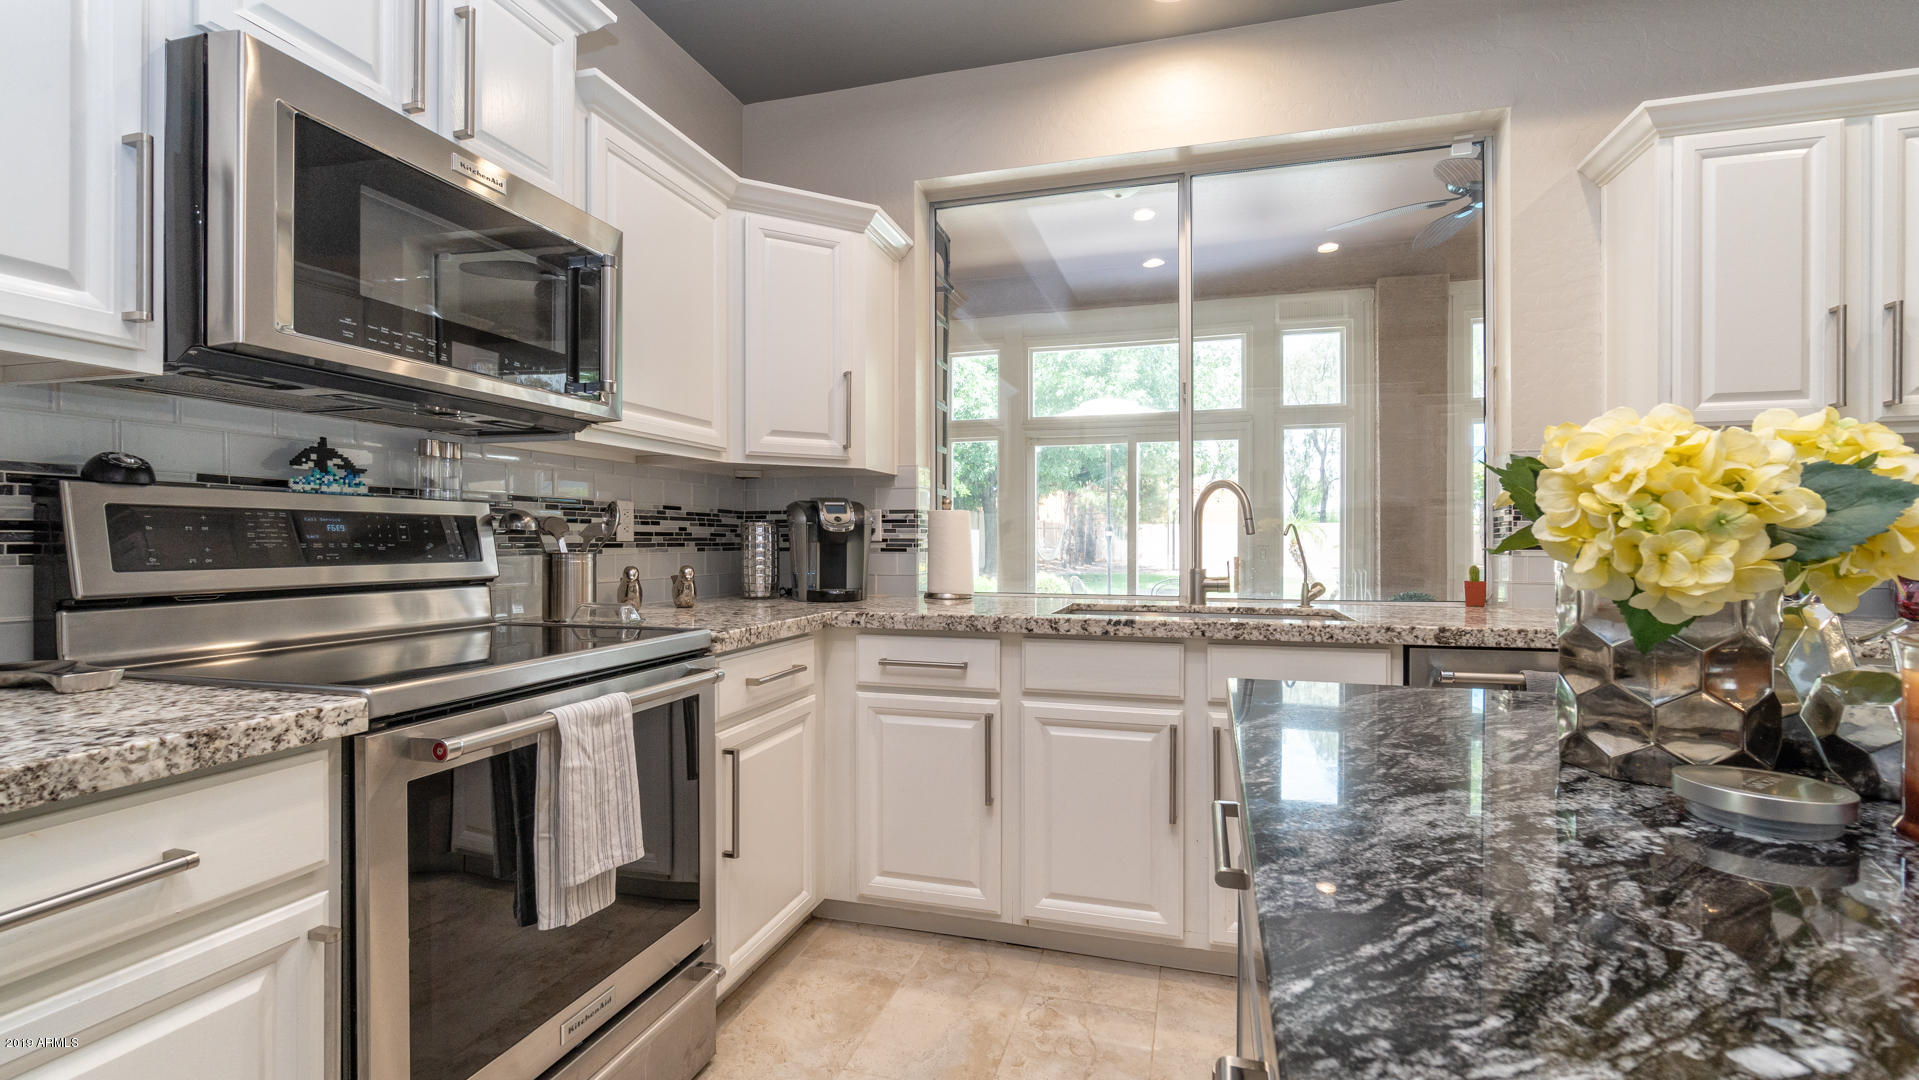 Redone gourmet kitchen